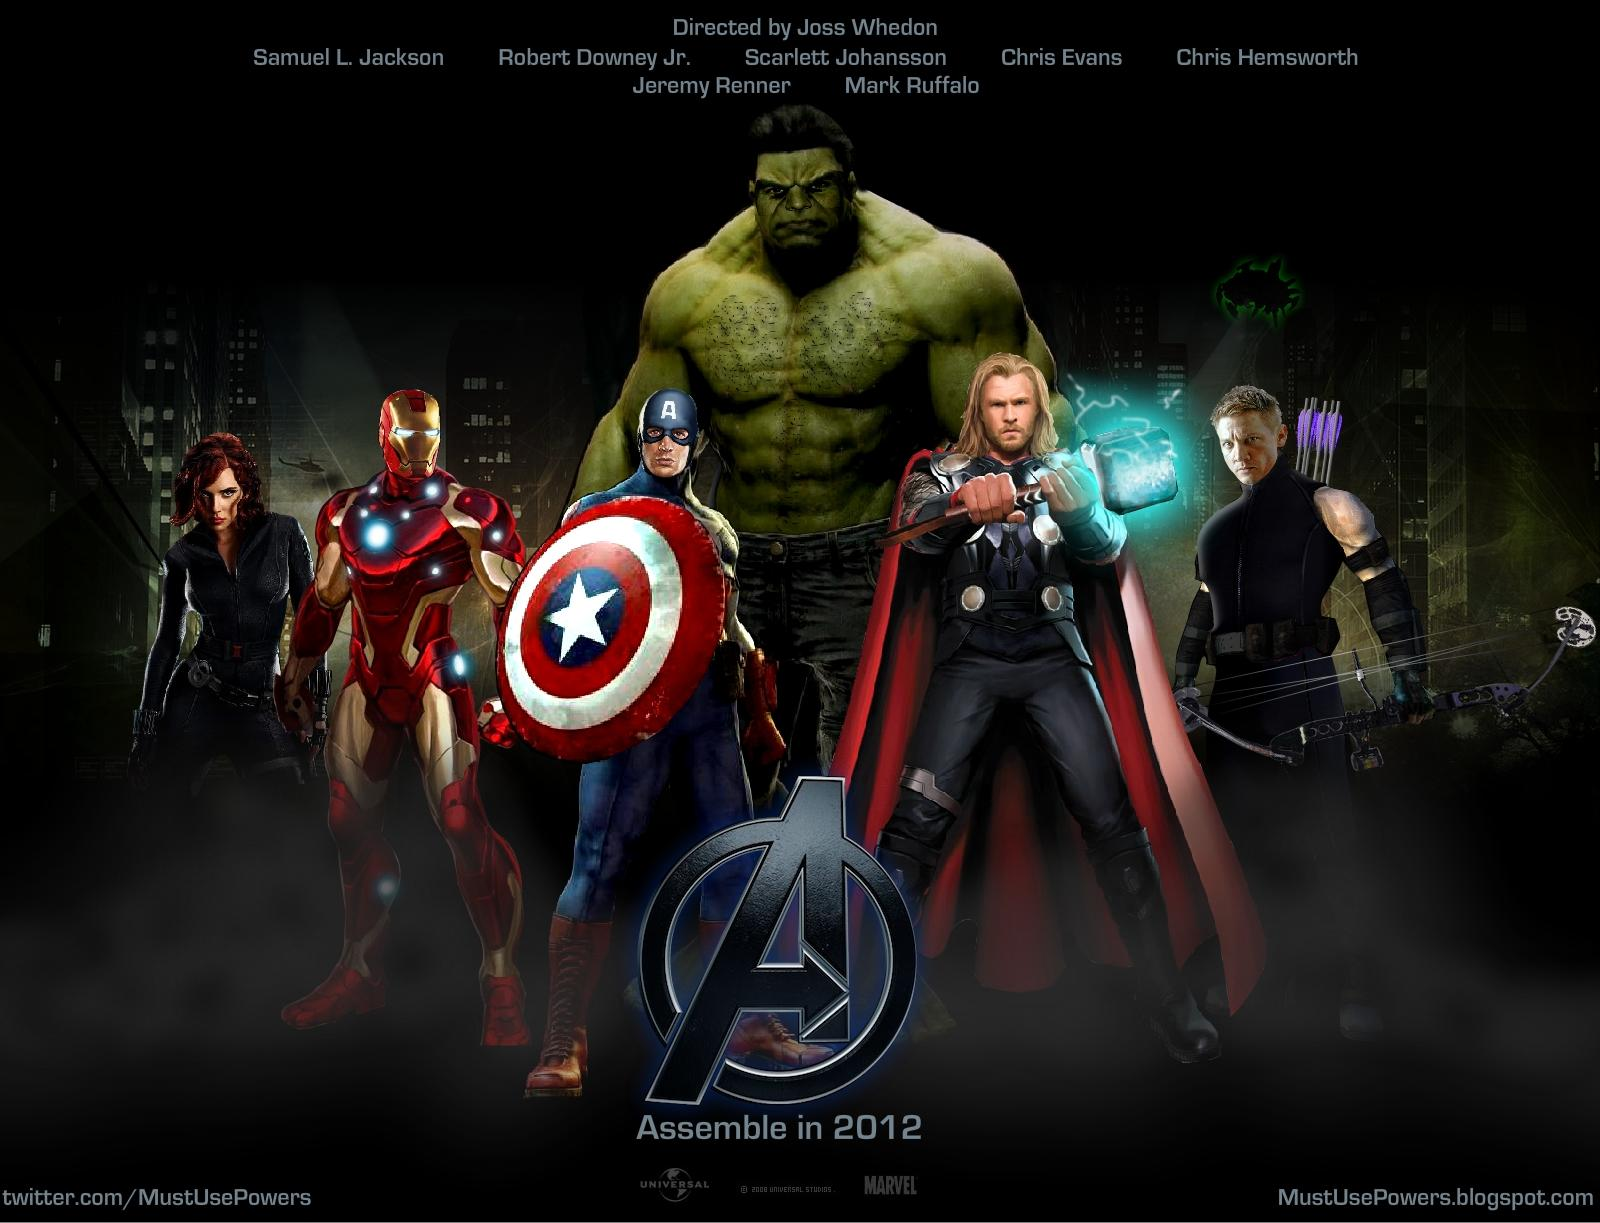 http://3.bp.blogspot.com/-pCSo1vXc1_w/T3ltVOygi1I/AAAAAAAAAe0/3ktL4MT2wGg/s1600/avengers-movie-2012-hd-wallpaper.jpg